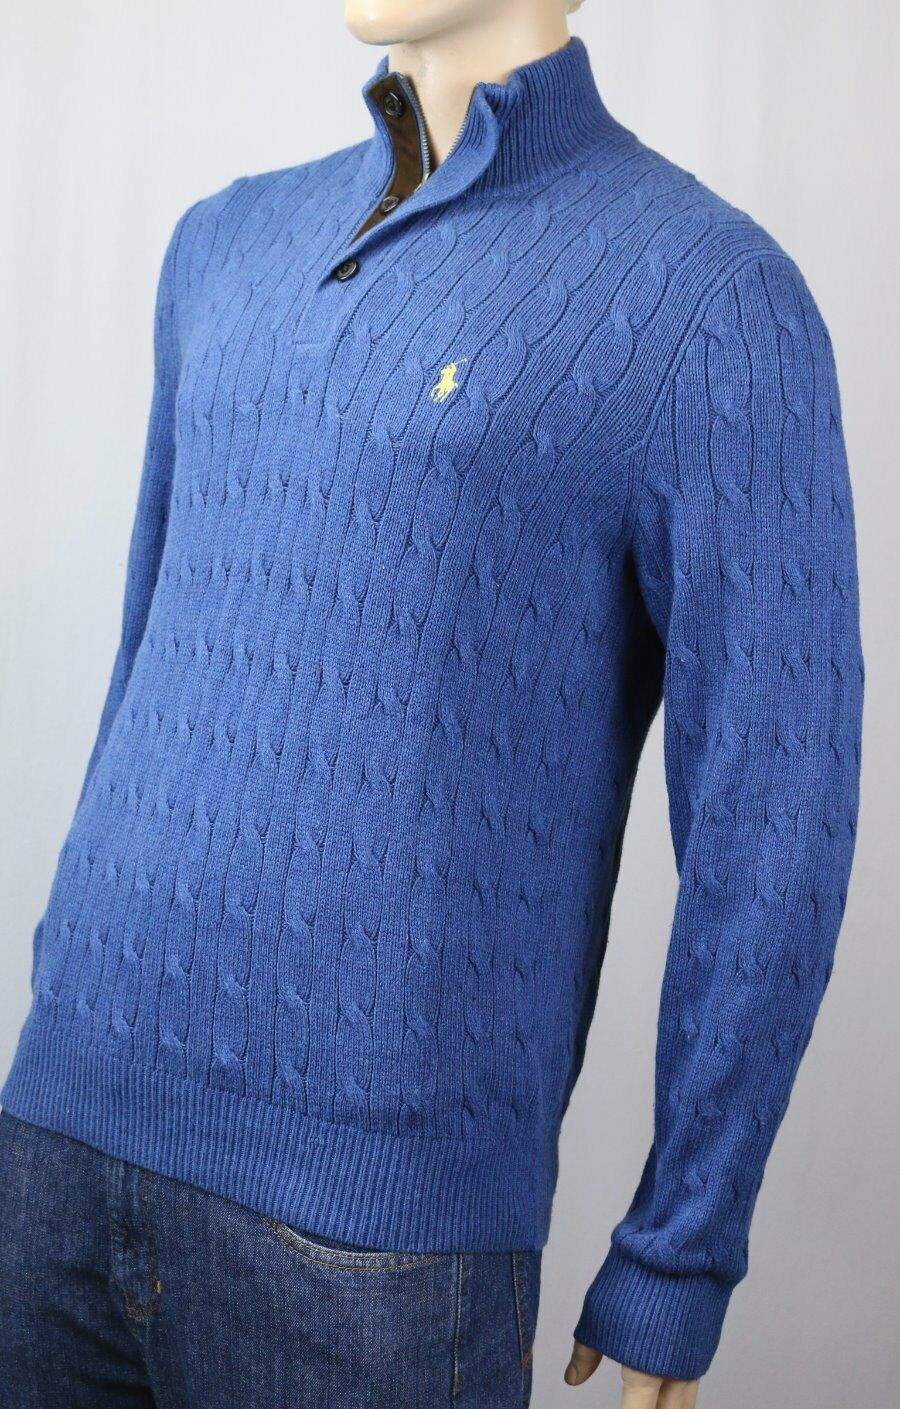 POLO Ralph Lauren Blau 1/2 Half Zip Silk Sweater Gelb Pony NWT 145